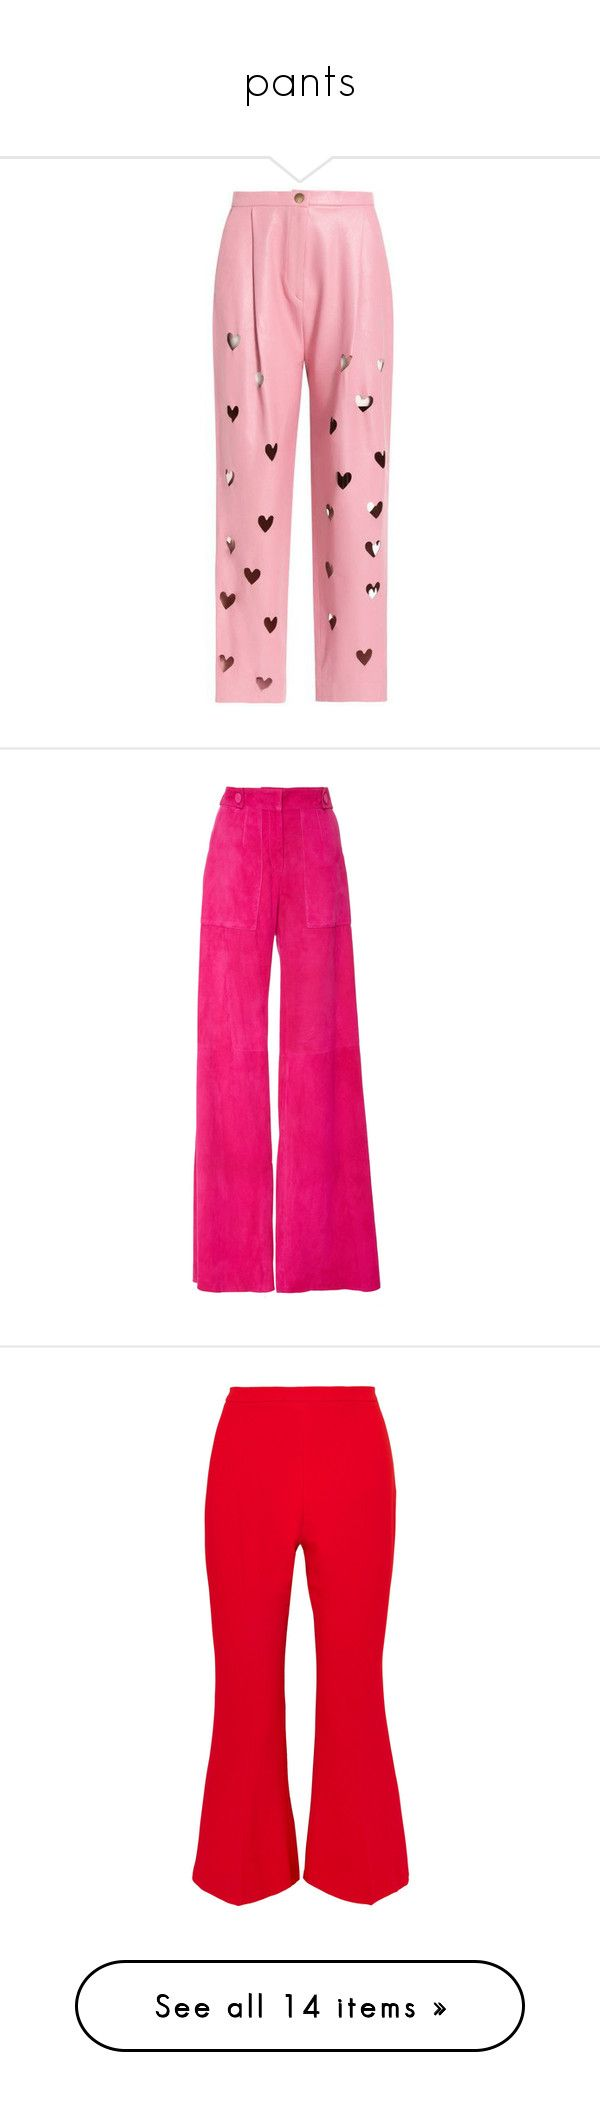 """""""pants"""" by marcellamic ❤ liked on Polyvore featuring pants, bottoms, trousers, red pants, red trousers, genuine leather pants, pleated pants, red leather trousers, high waisted suede pants and pink pants"""